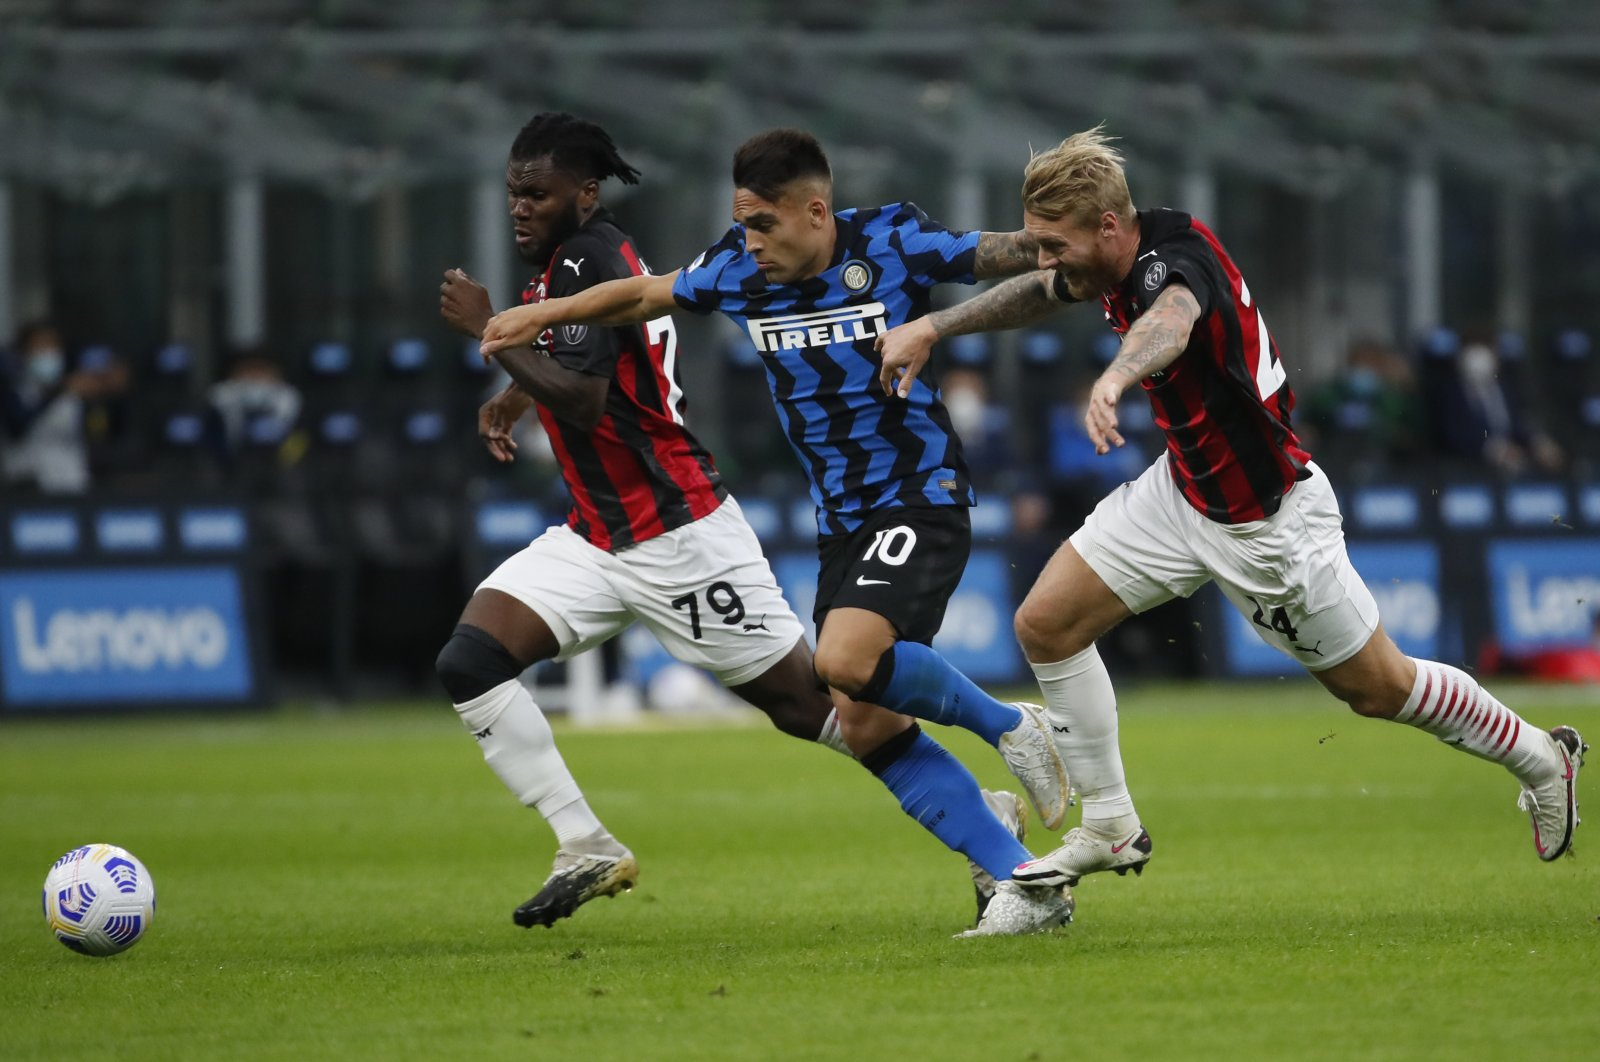 Inter Milan's Lautaro Martinez (C) is caught in between AC Milan's Franck Kessie (L) and Simon Kjaer during a Serie A at the San Siro Stadium, in Milan, Italy, Oct. 17, 2020. (AP Photo)